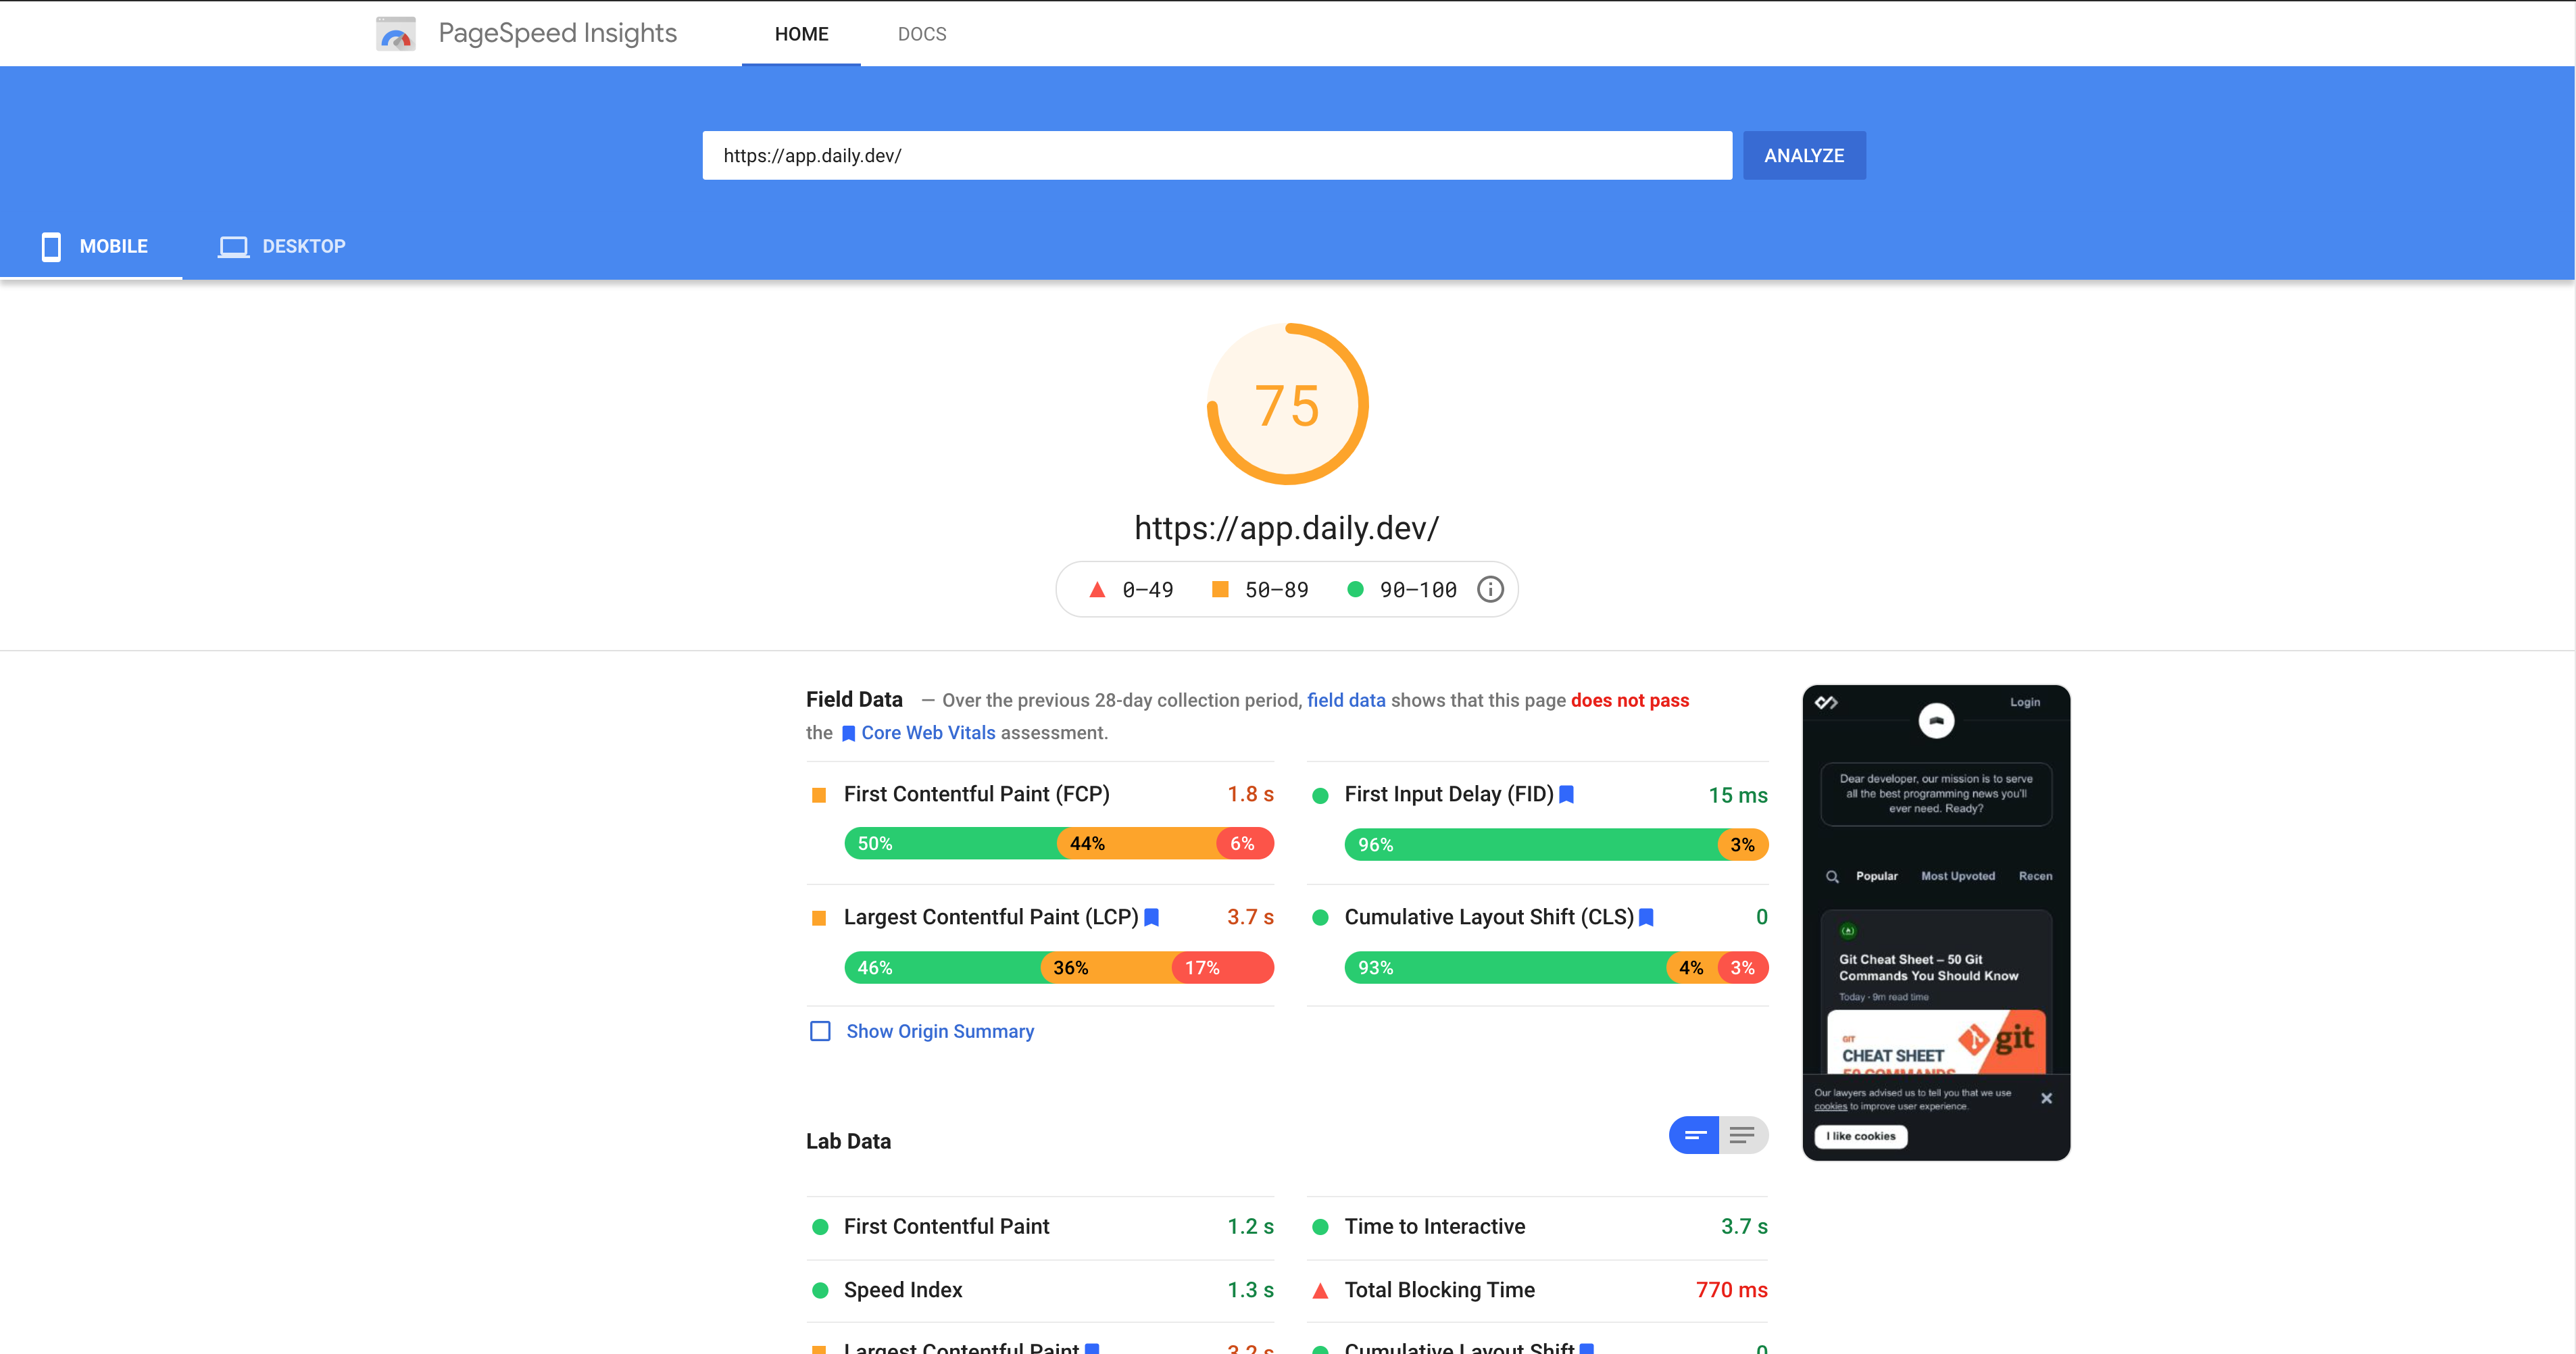 PageSpeed report - score 75 out of 100